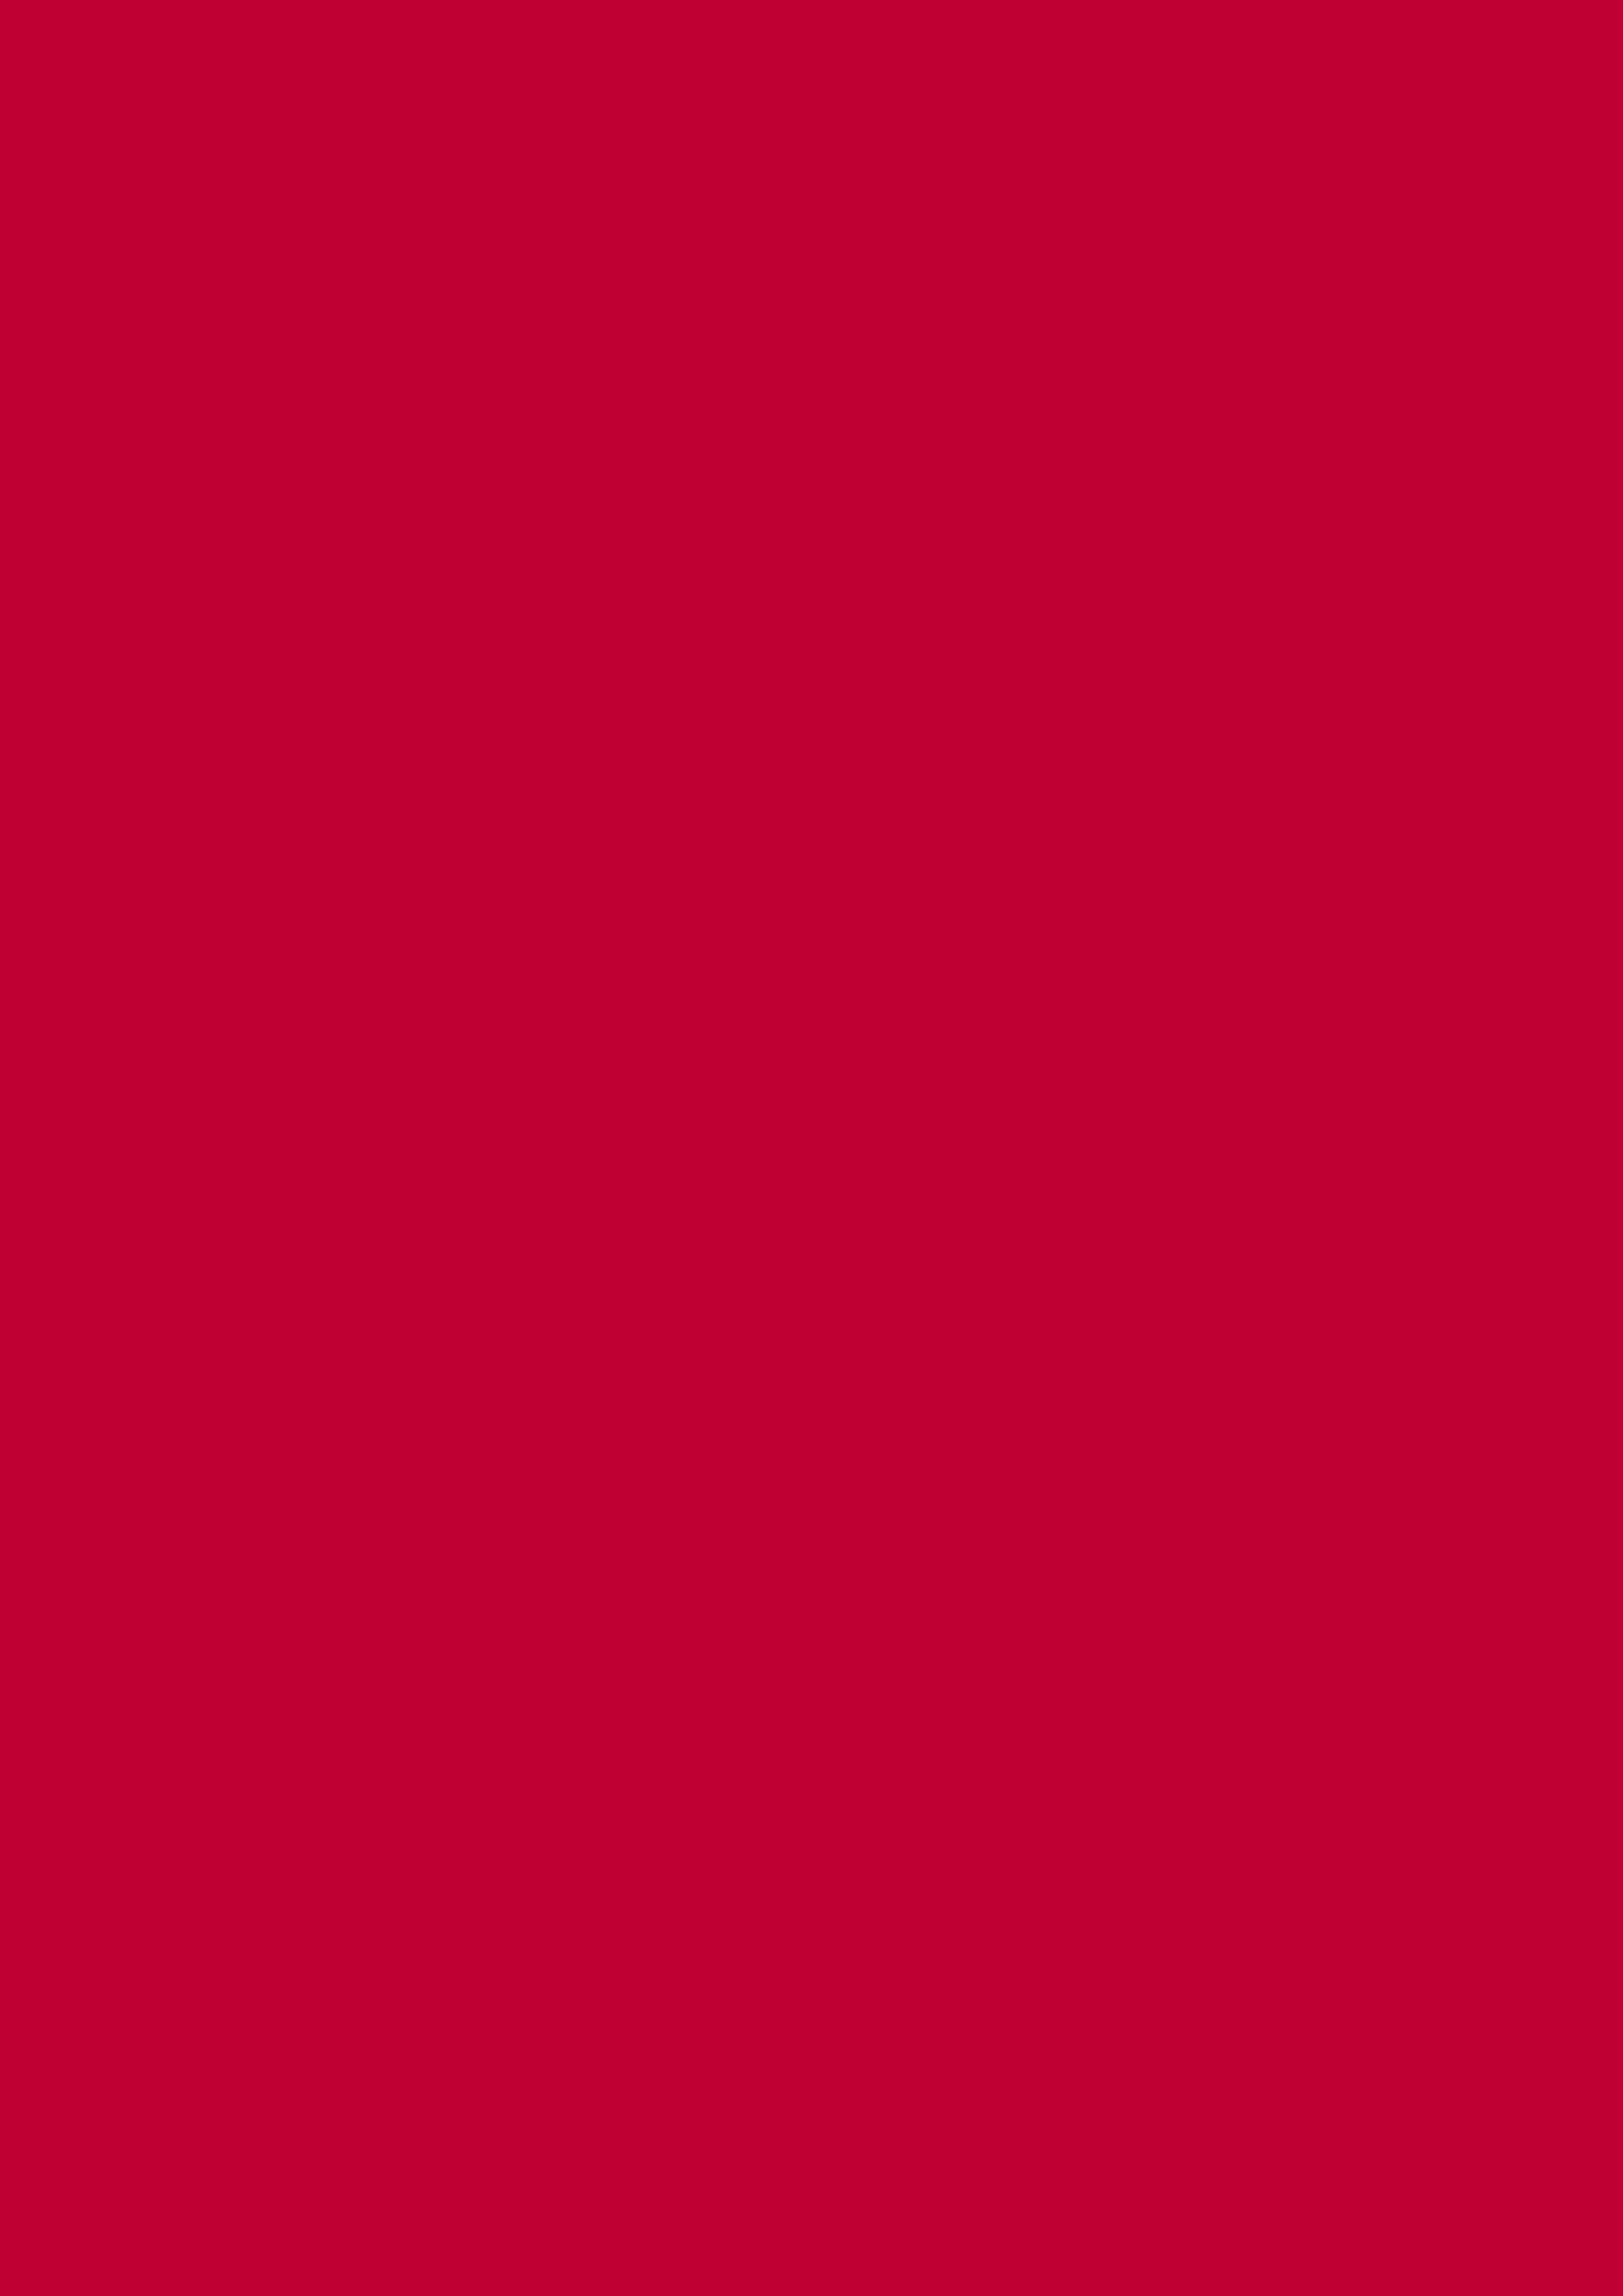 2480x3508 Crimson Glory Solid Color Background